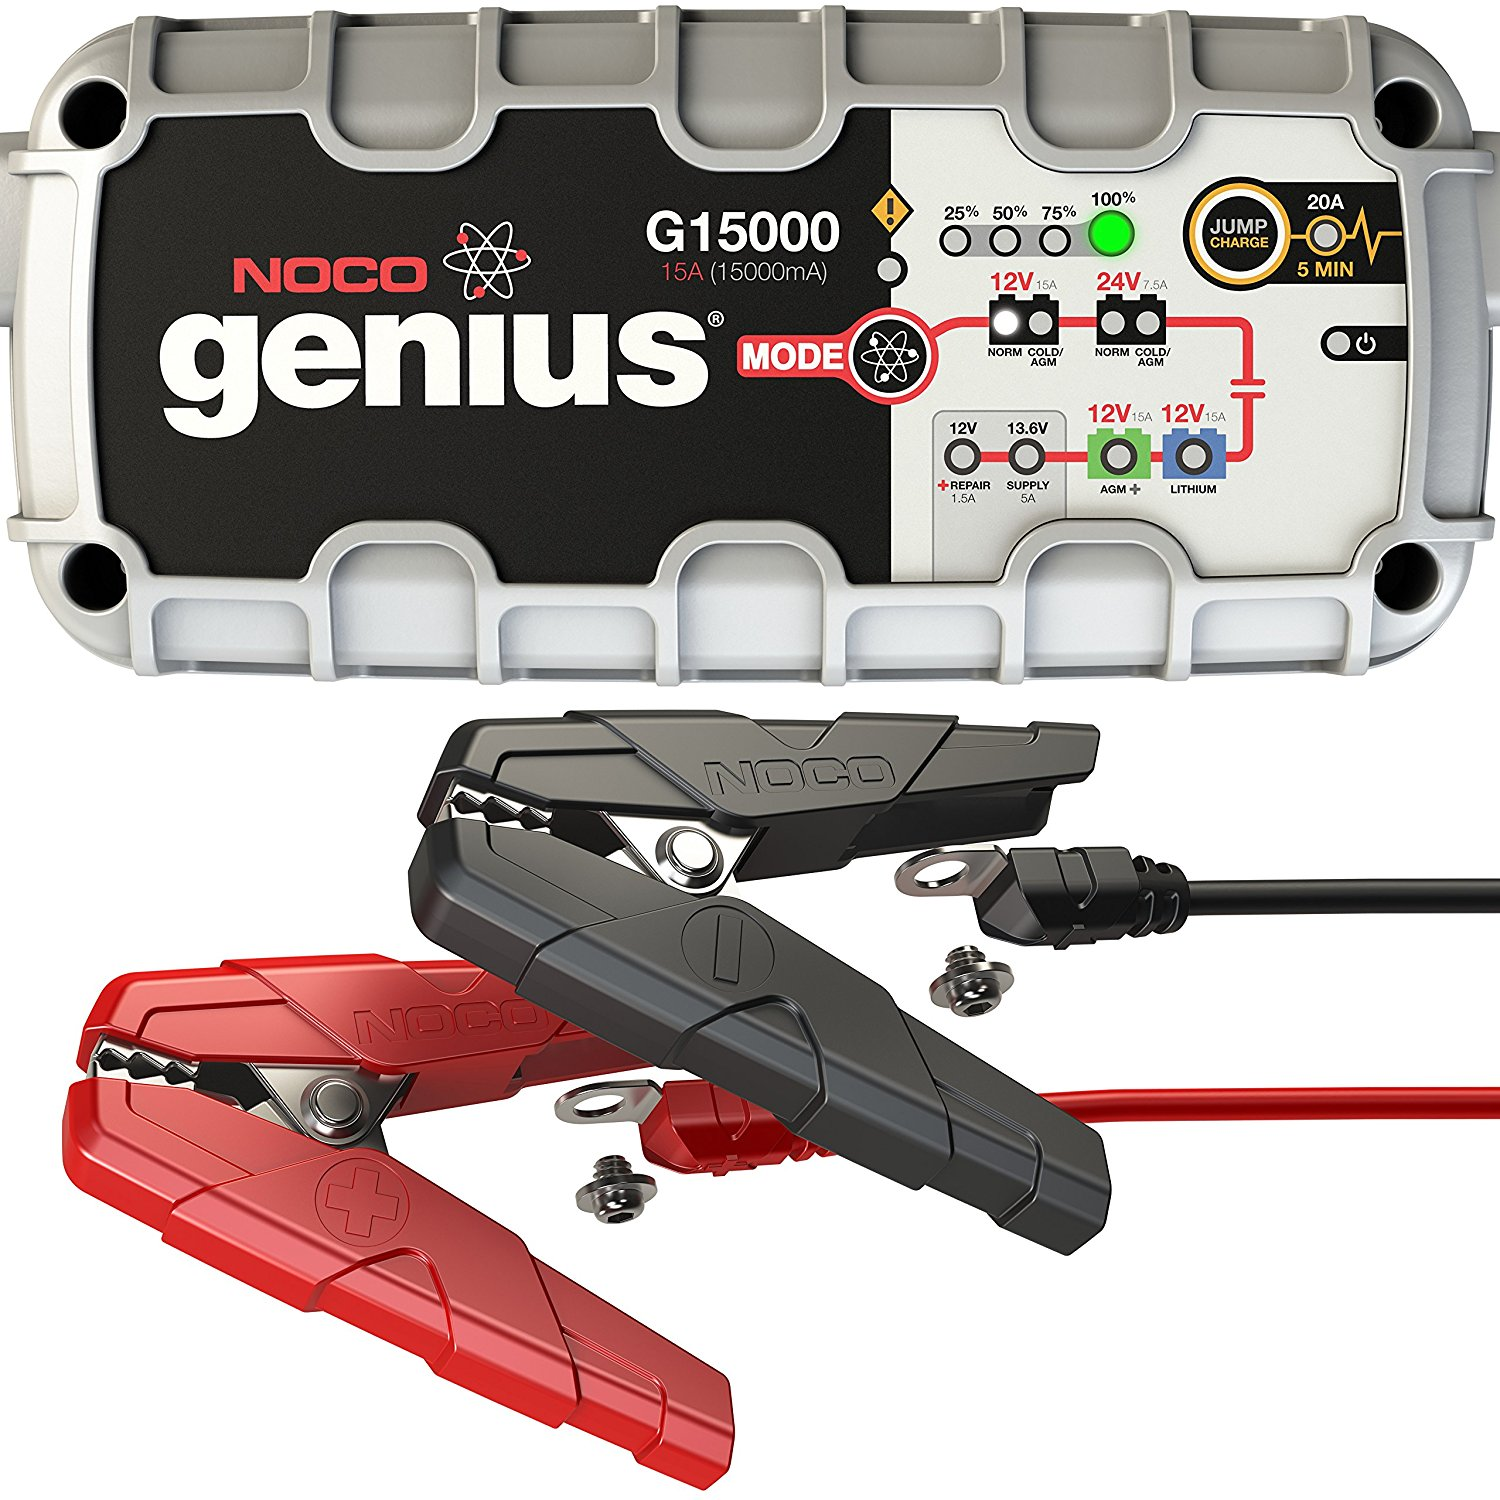 NONO Genius G15000 12v/24v Smart Battery Charger